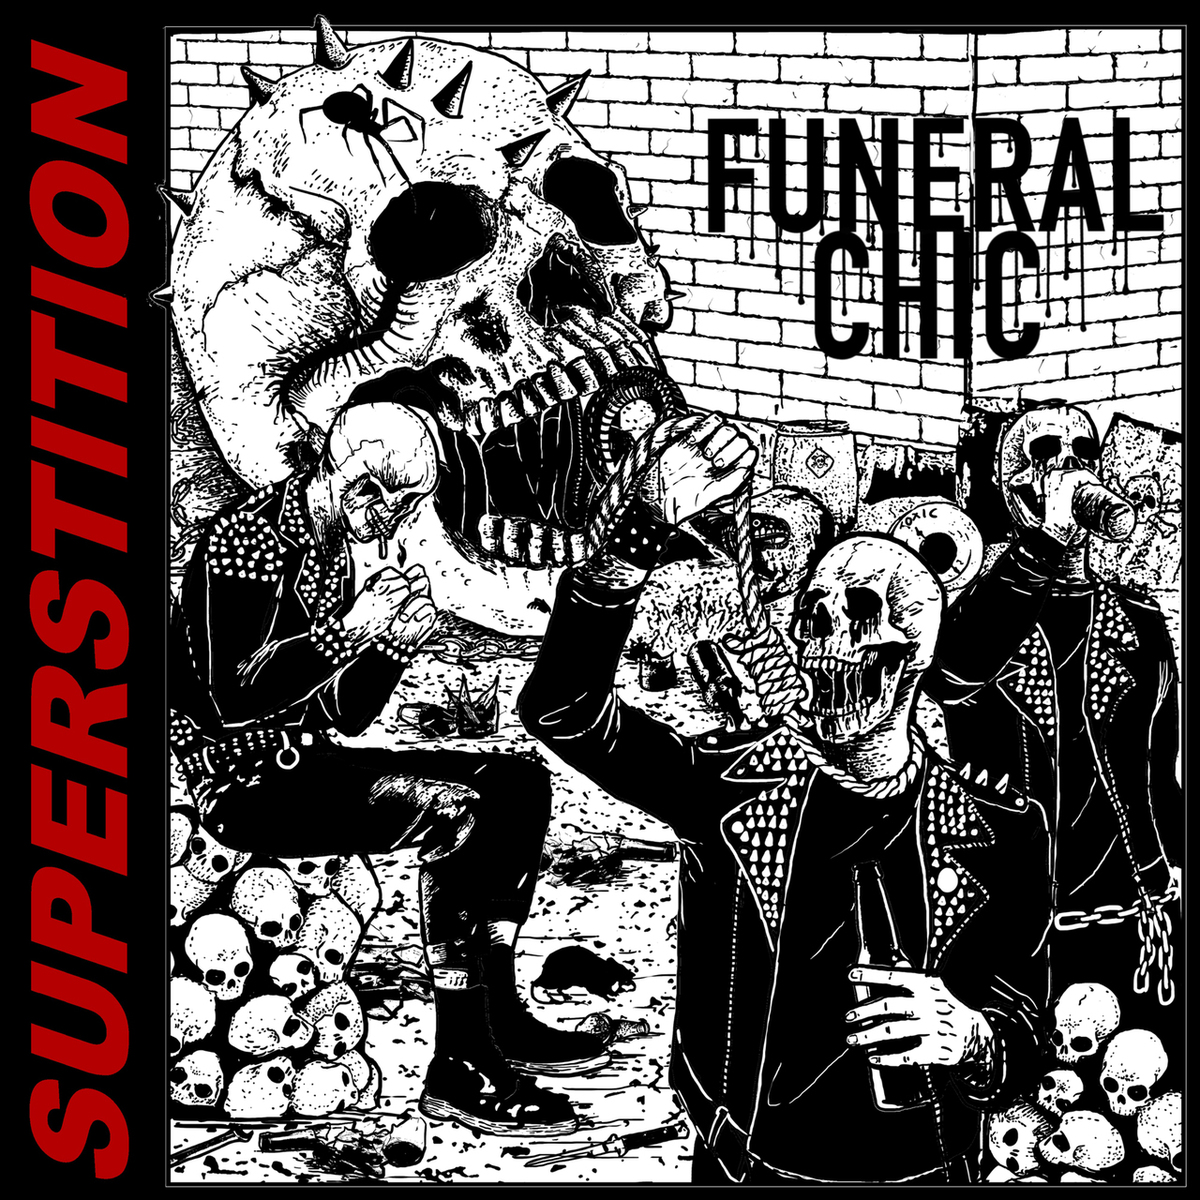 Power Tools, Cover Songs And Prosthetic Records With Ryan And Robert Of Funeral Chic